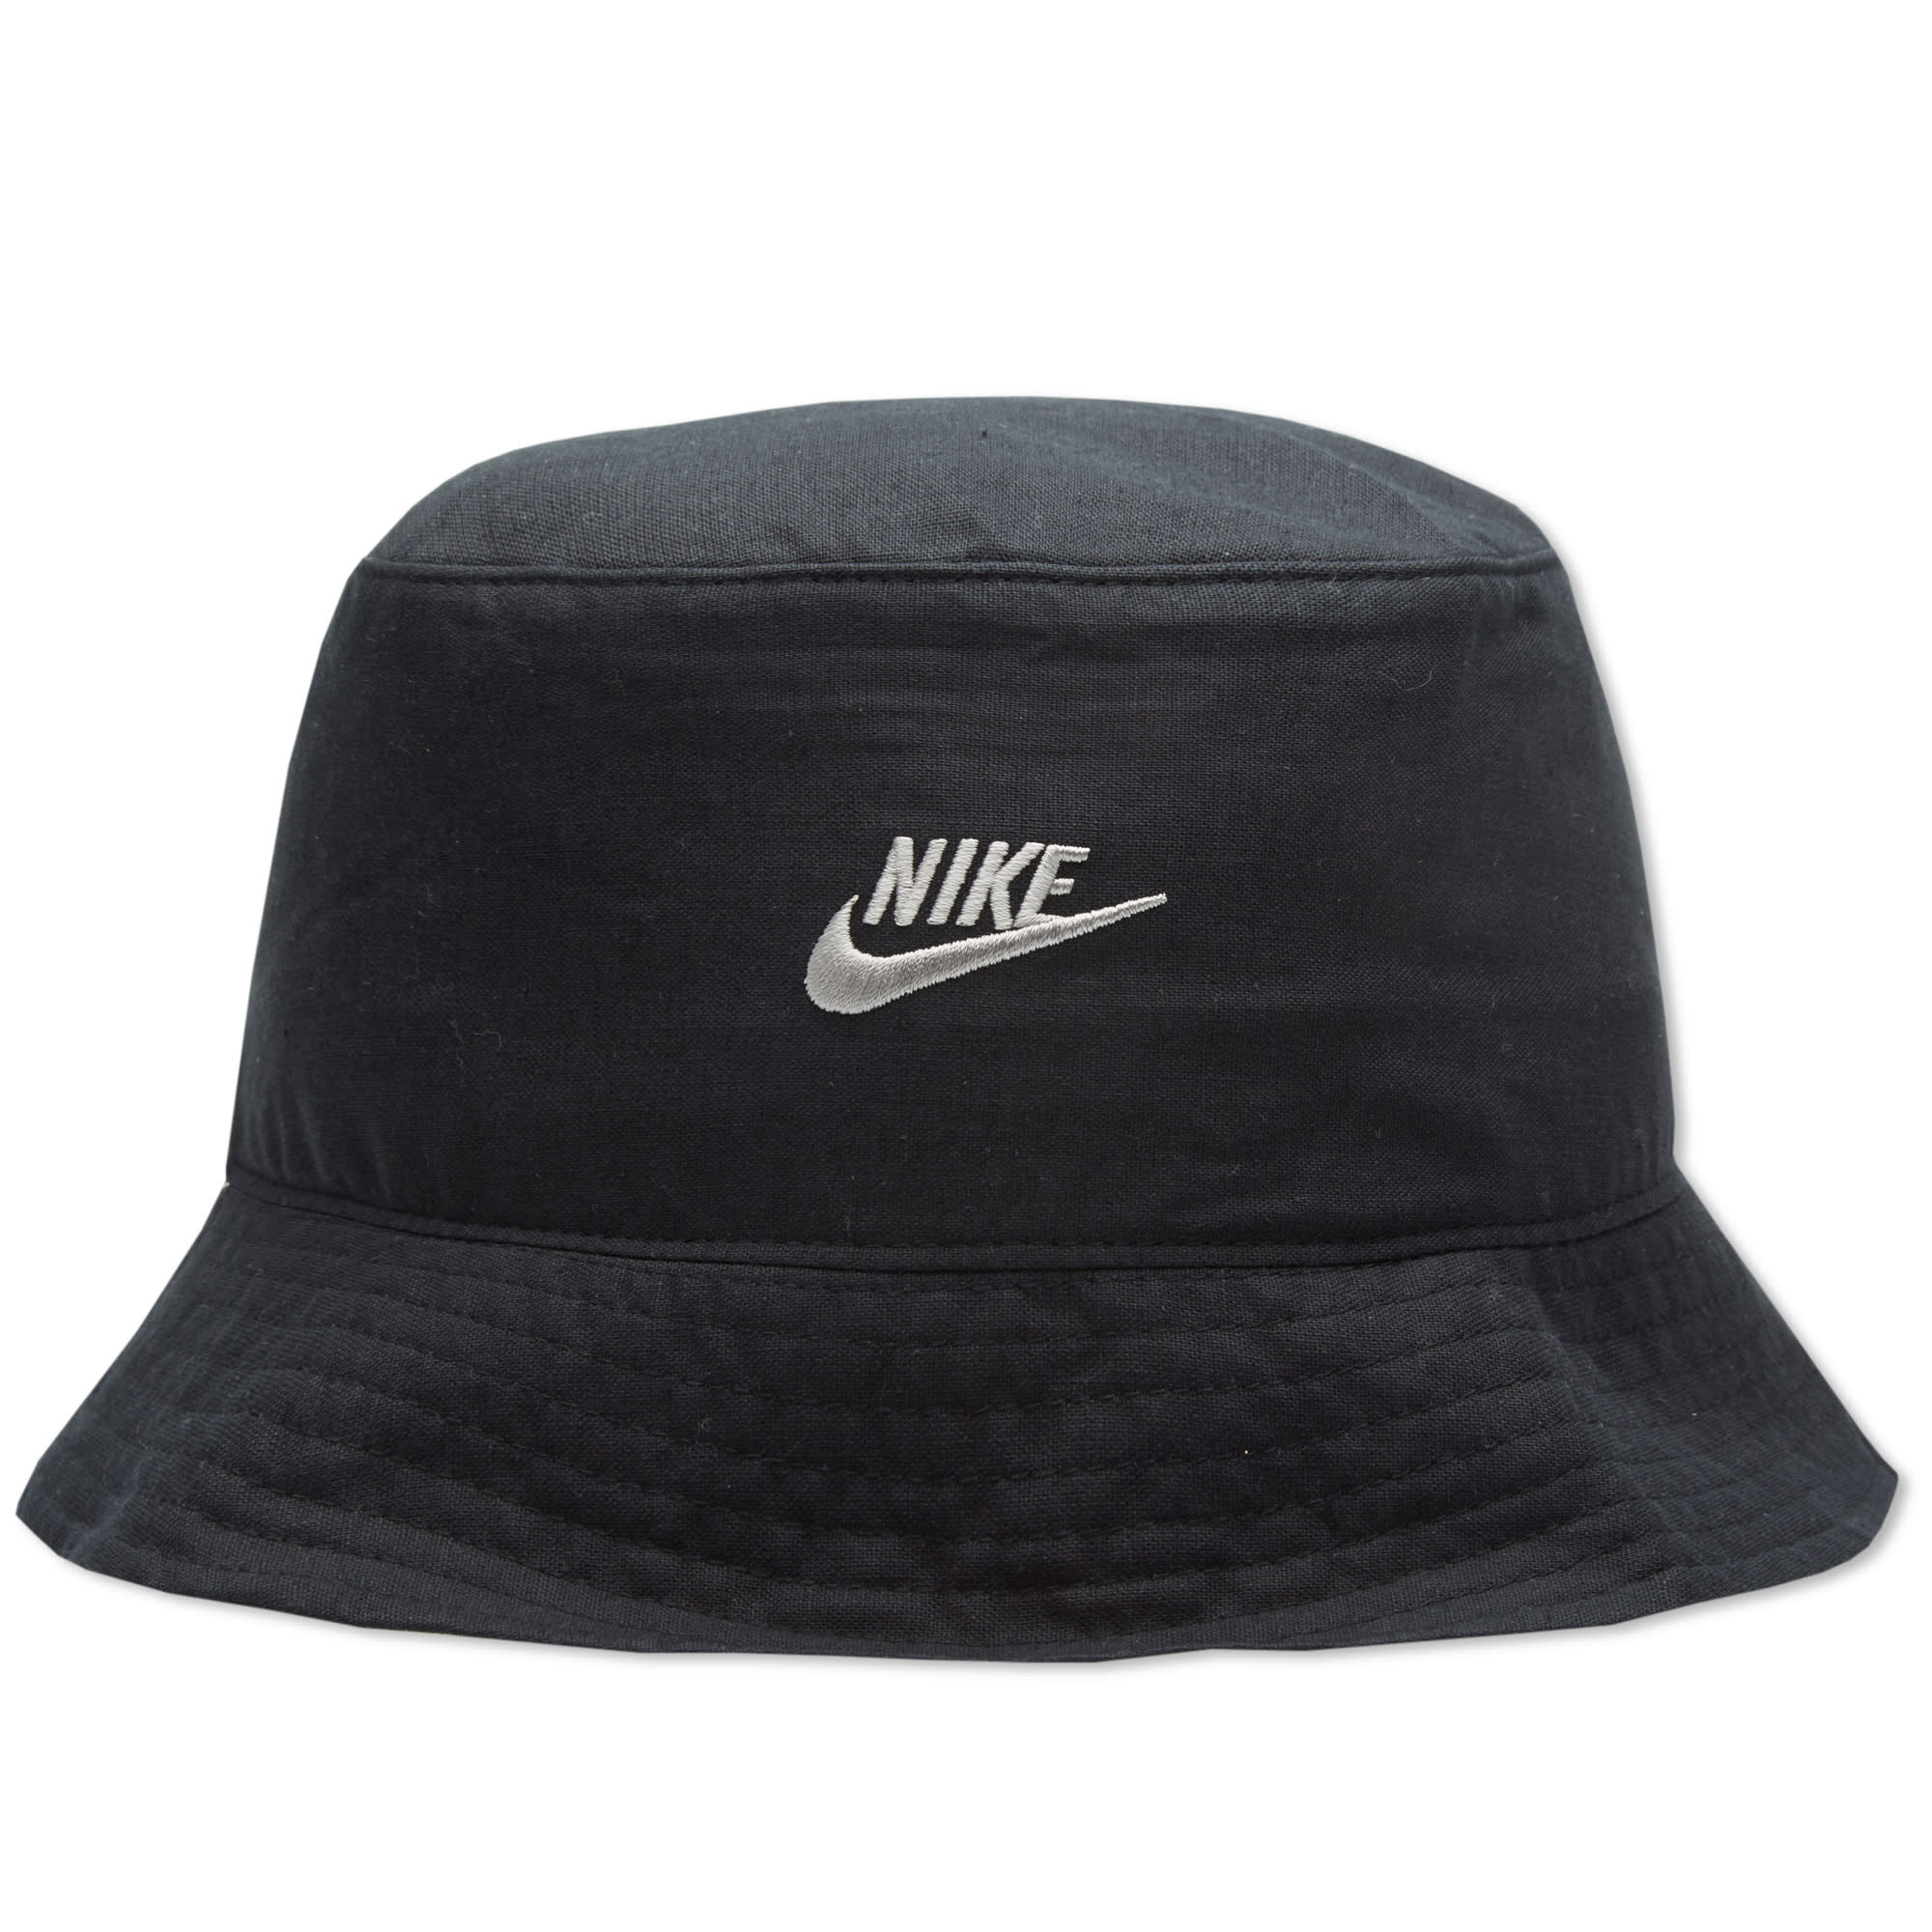 Nike Bucket Hat Black